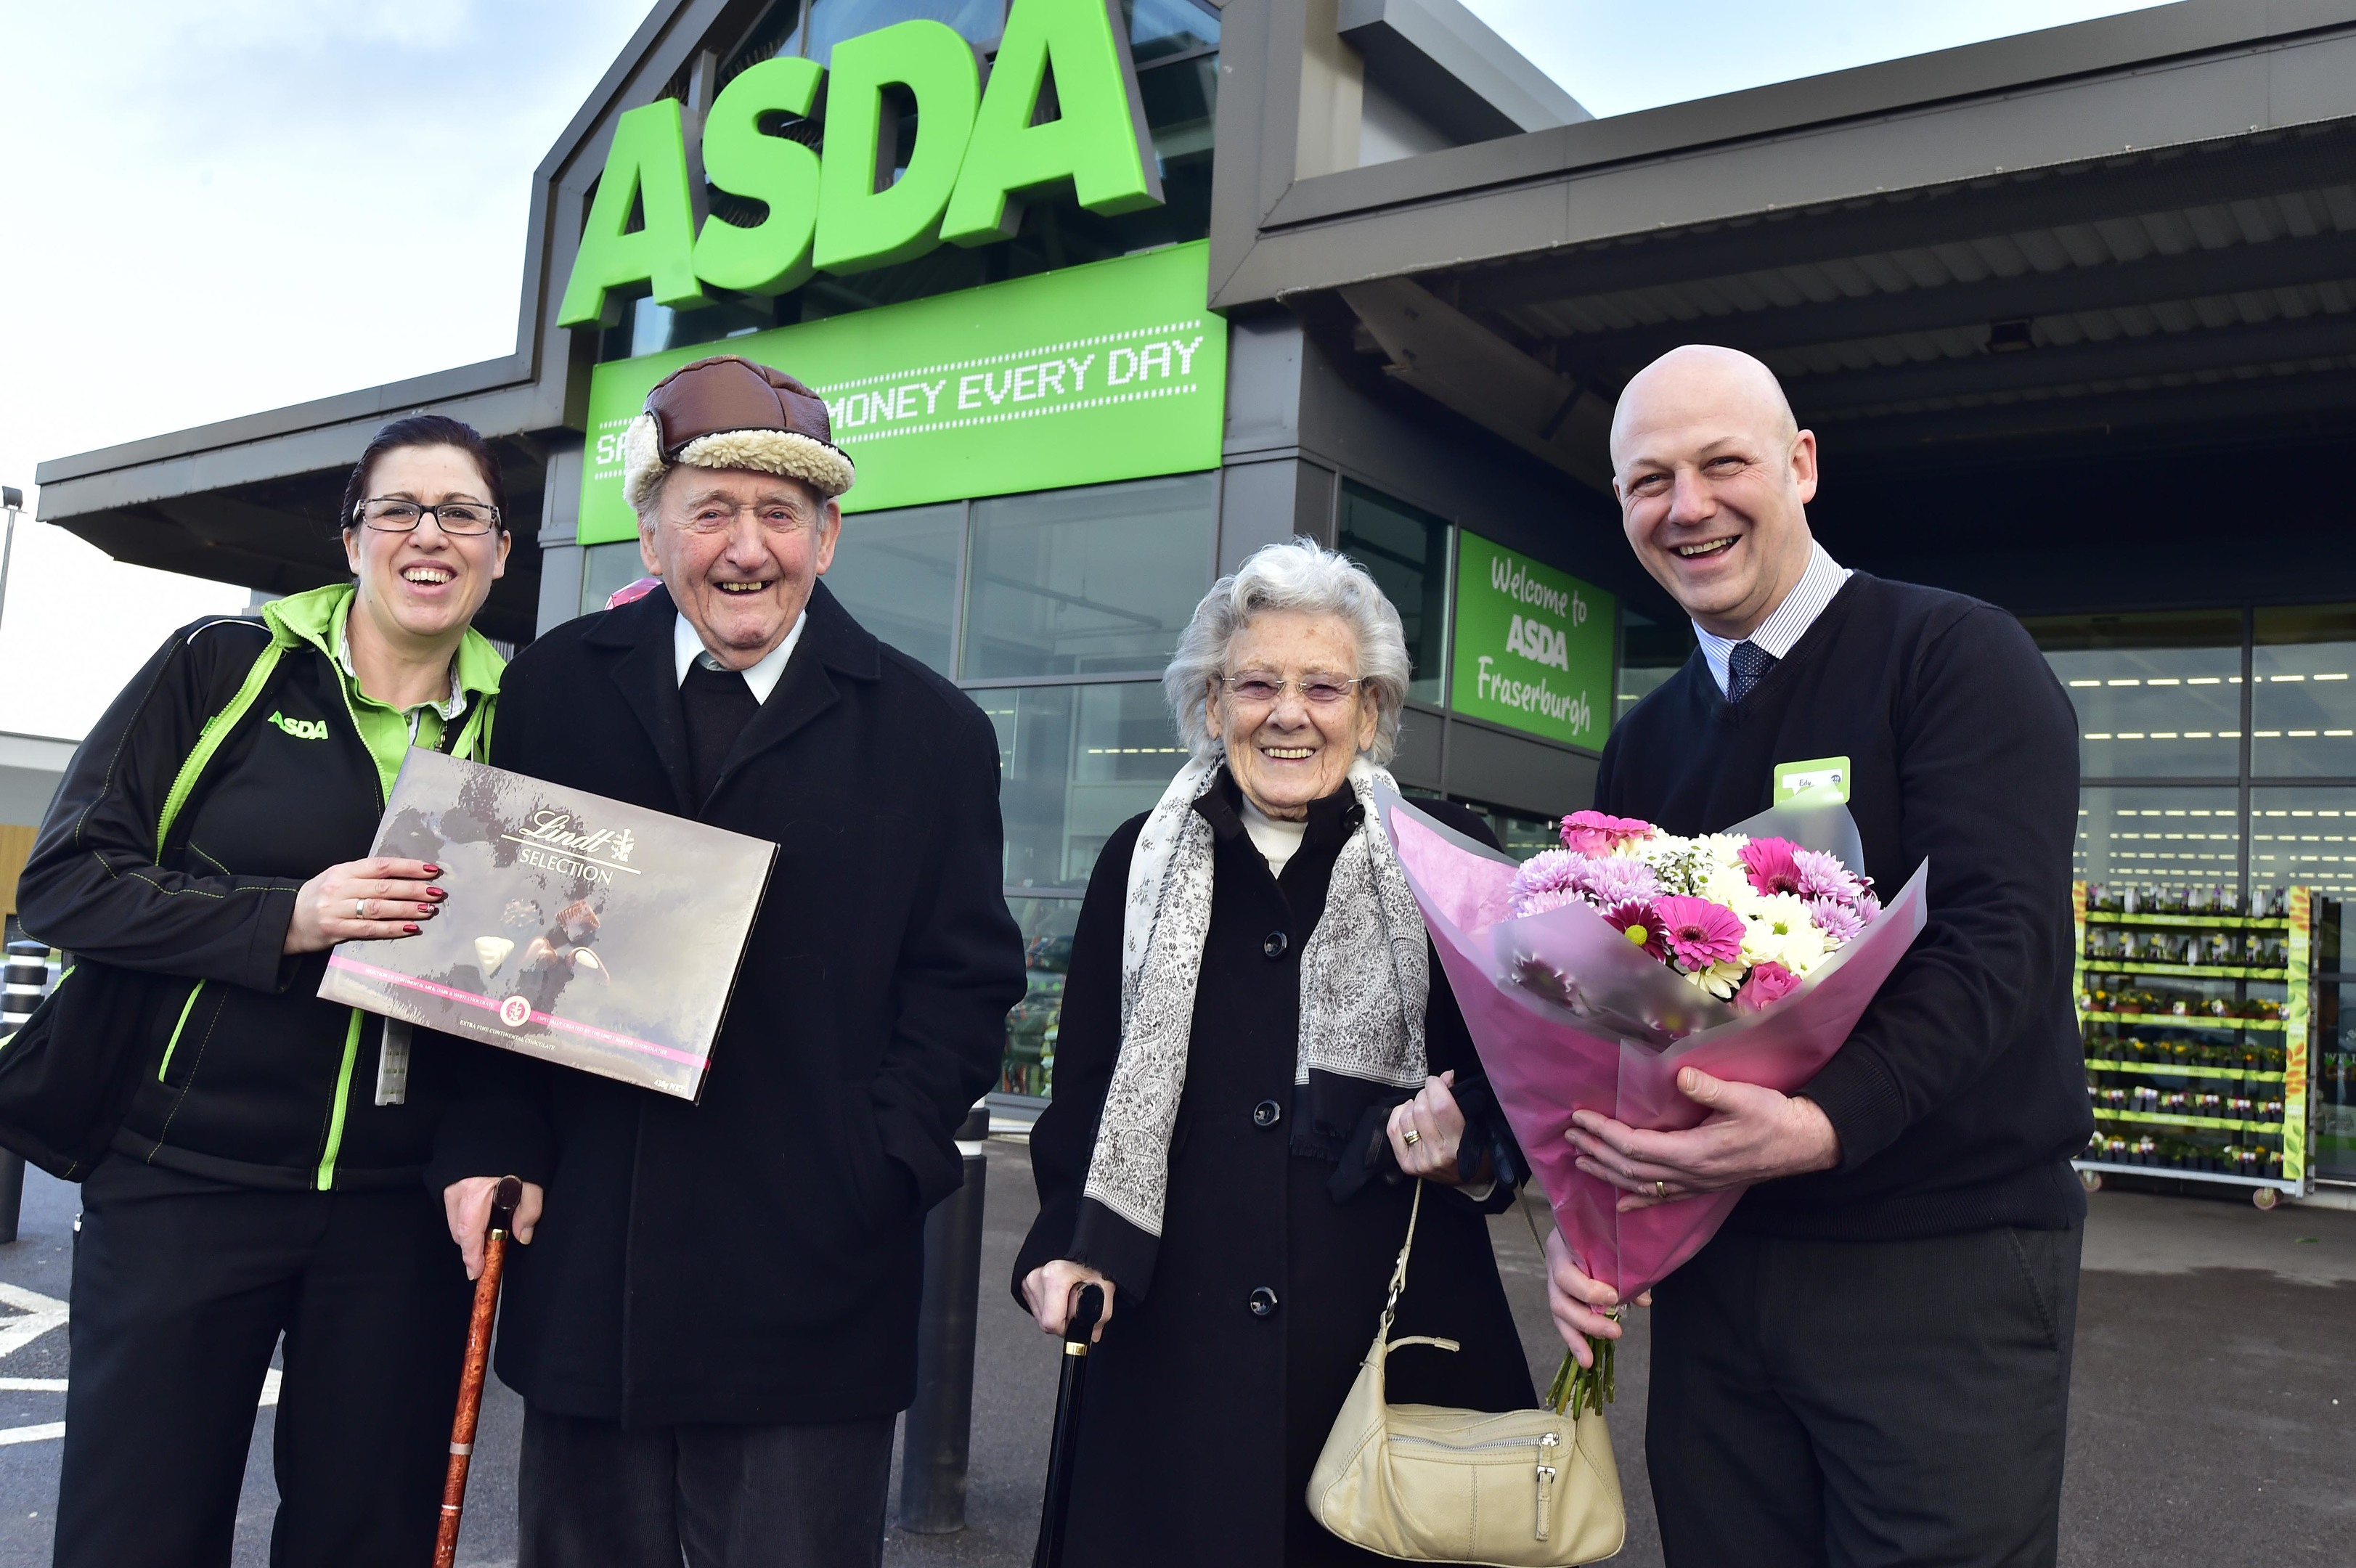 FRASERBURGH COUPLE BOB AND GINA MCDONALD RECEIVE GIFTS FROM ASDA MANAGER EDY YOUNG AND COMMUNITY CHAMPION CAROLYN TAYLOR TO MARK THEIR 70TH WEDDING ANNIVERSARY